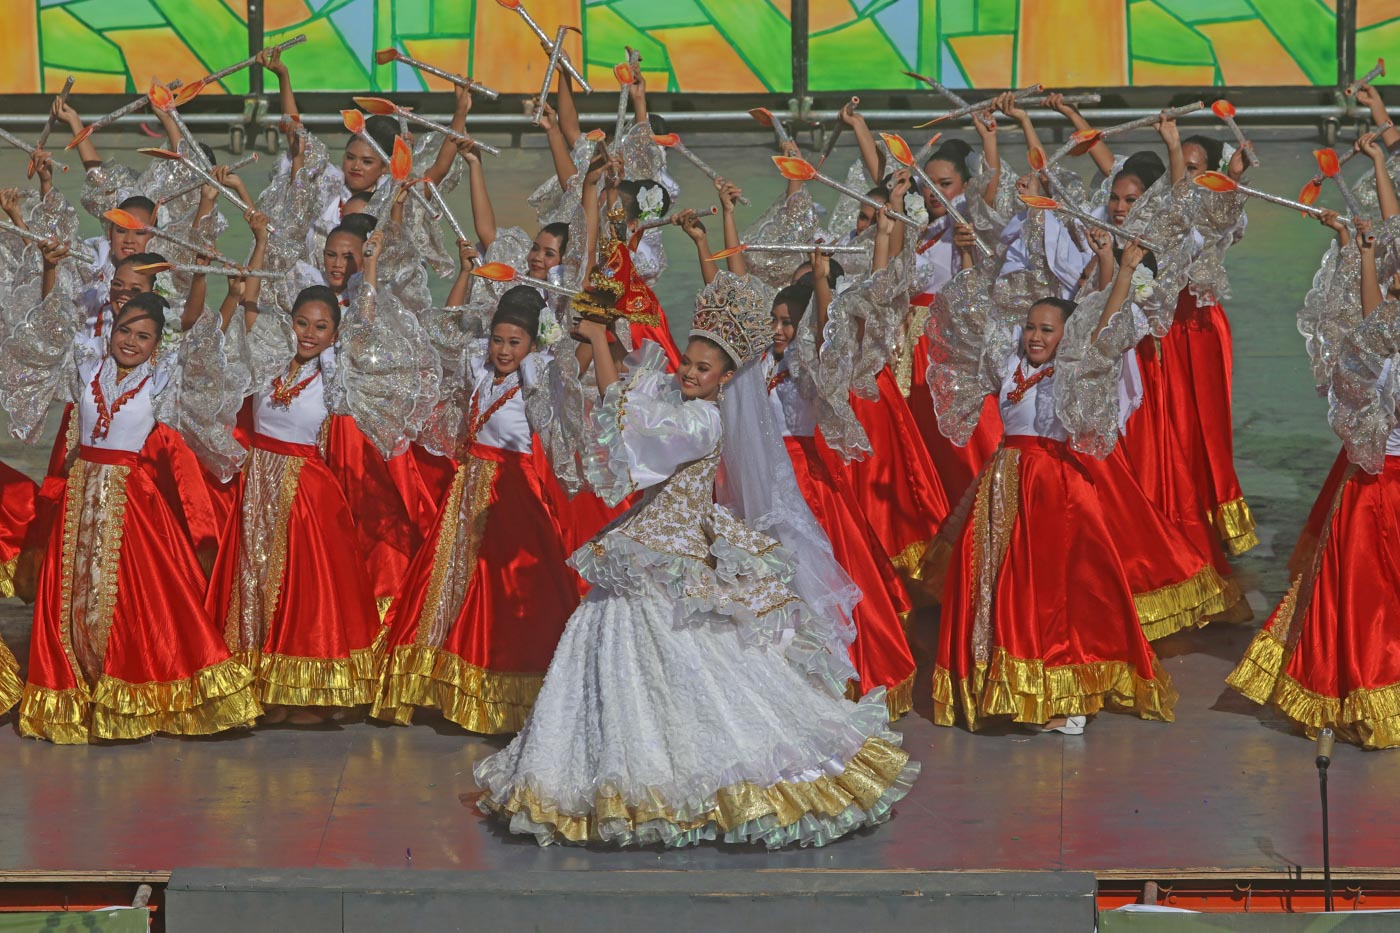 DANCE. Youth from different towns dance the Sinulog